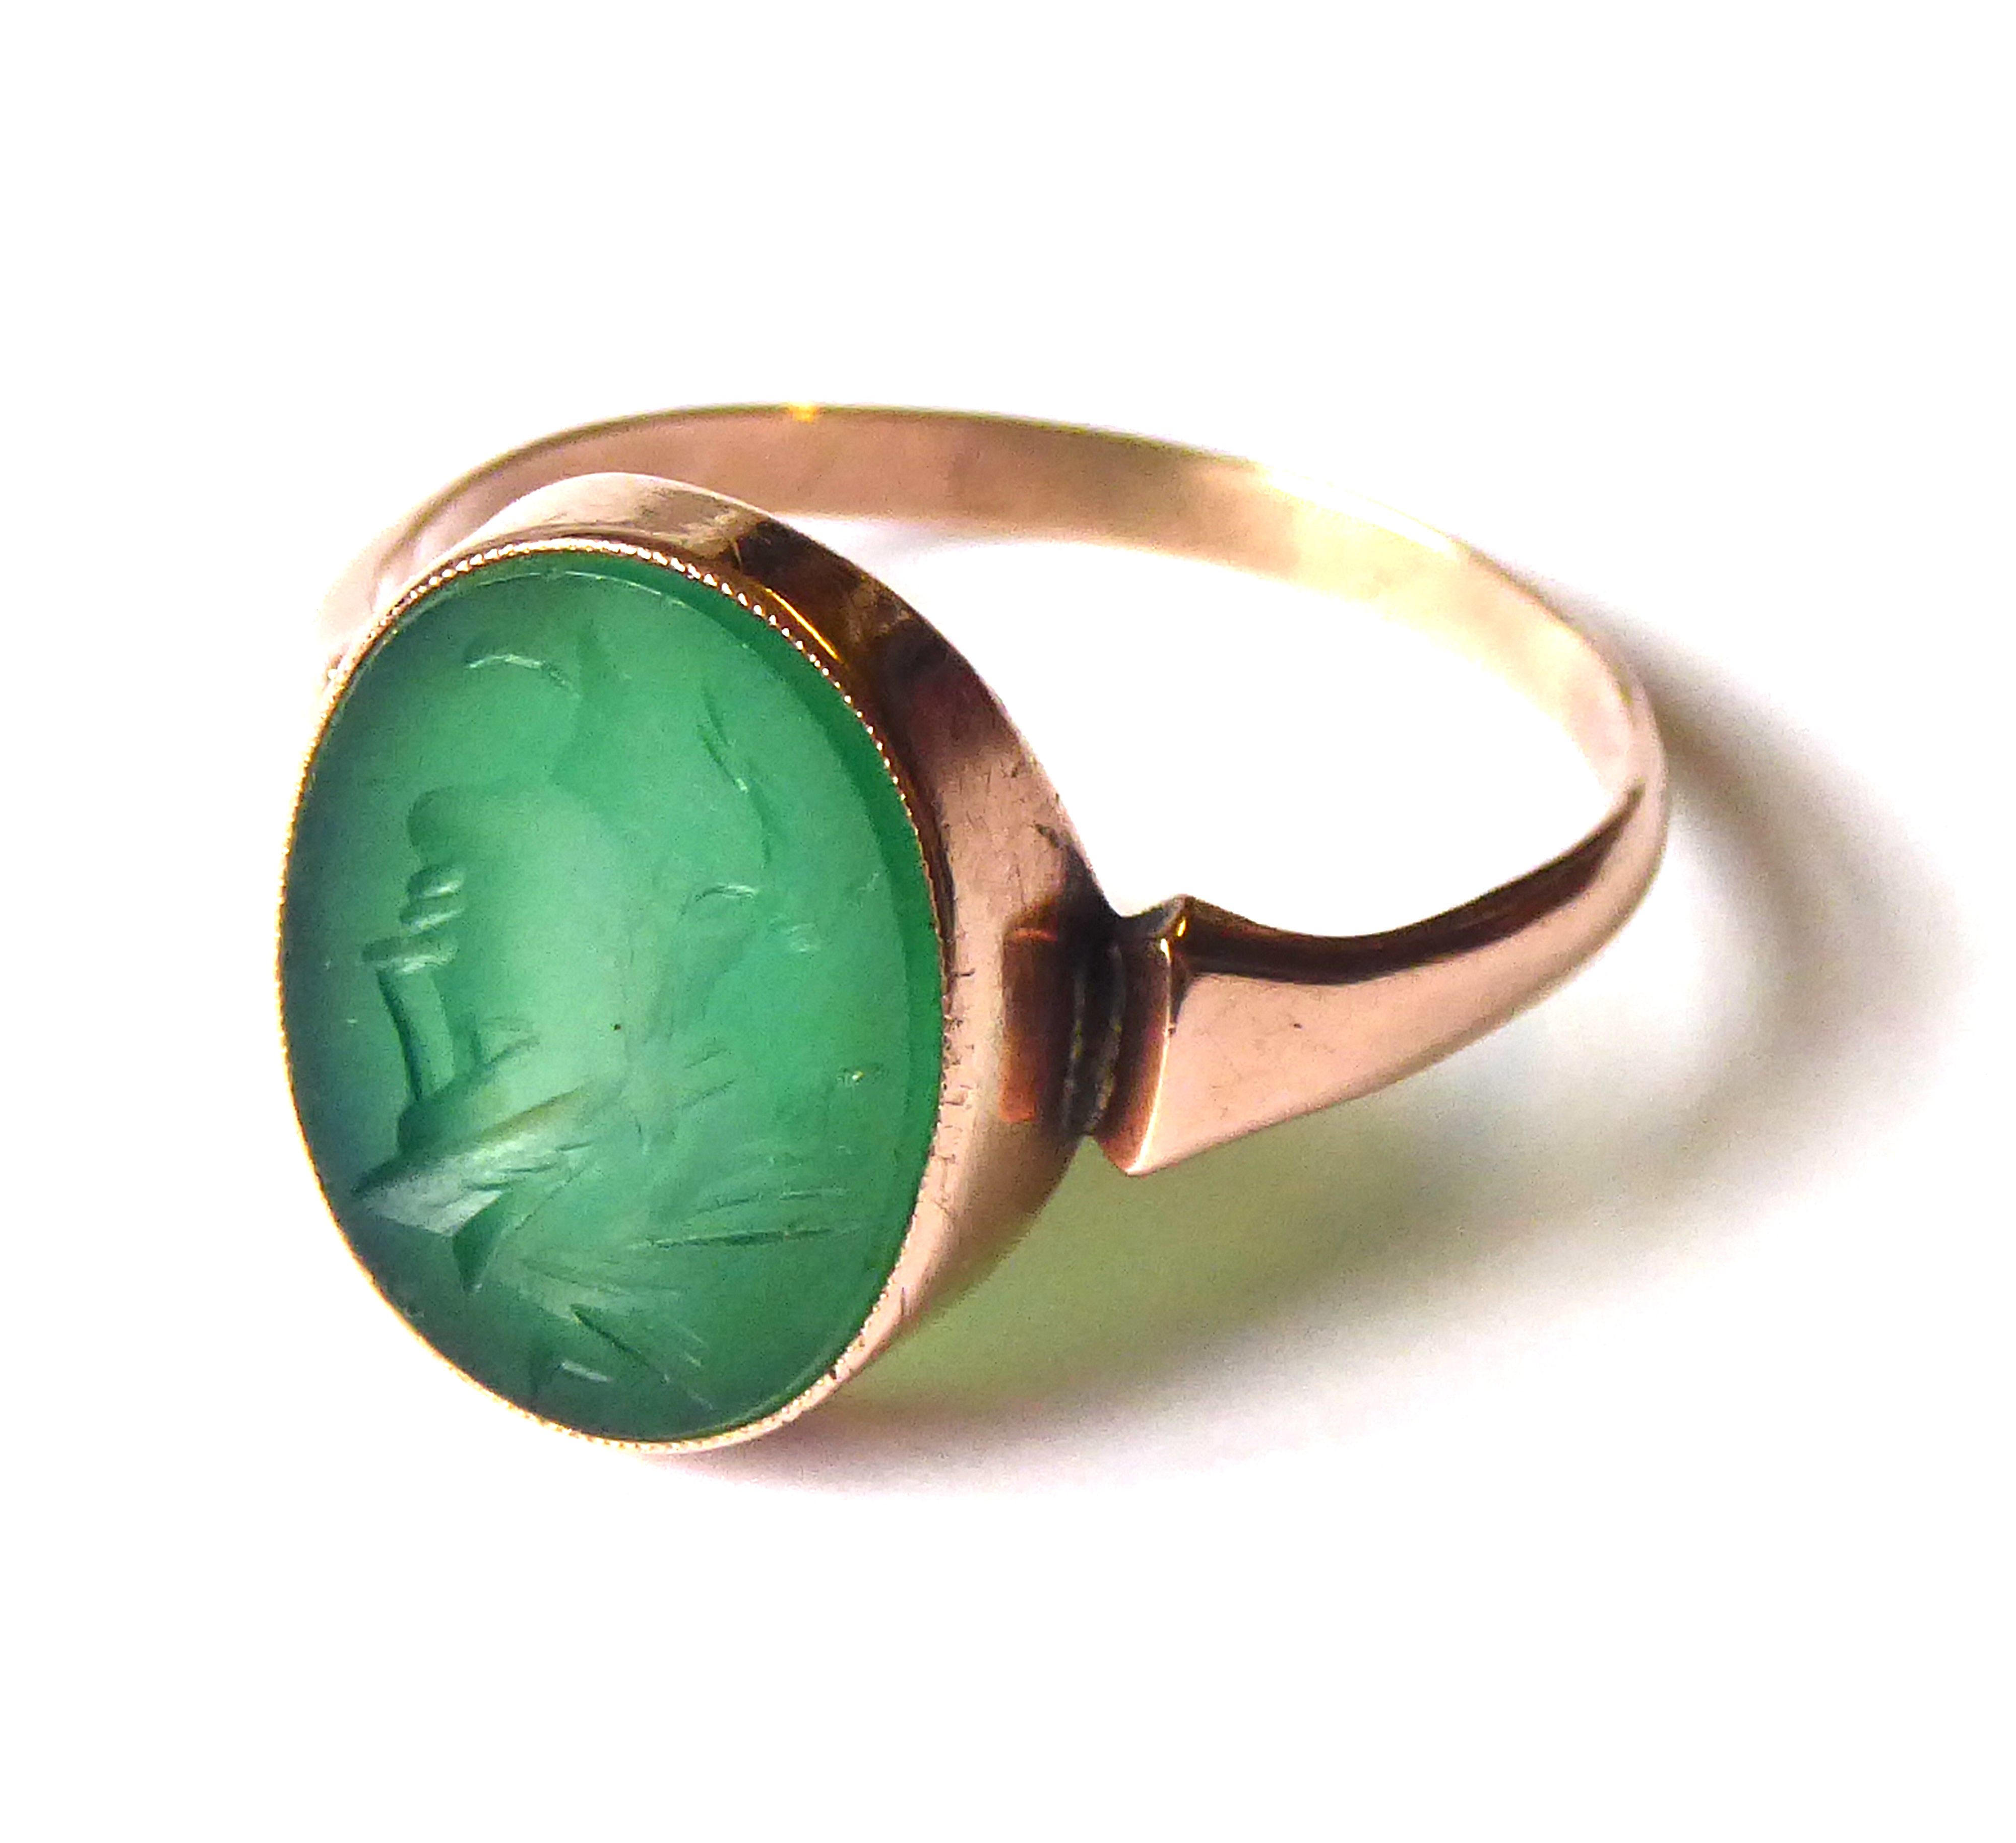 Lot 6 - A LATE 19th/EARLY 20TH CENTURY YELLOW METAL AND HARD STONE INTAGLIO SIGNET RING Having an oval green